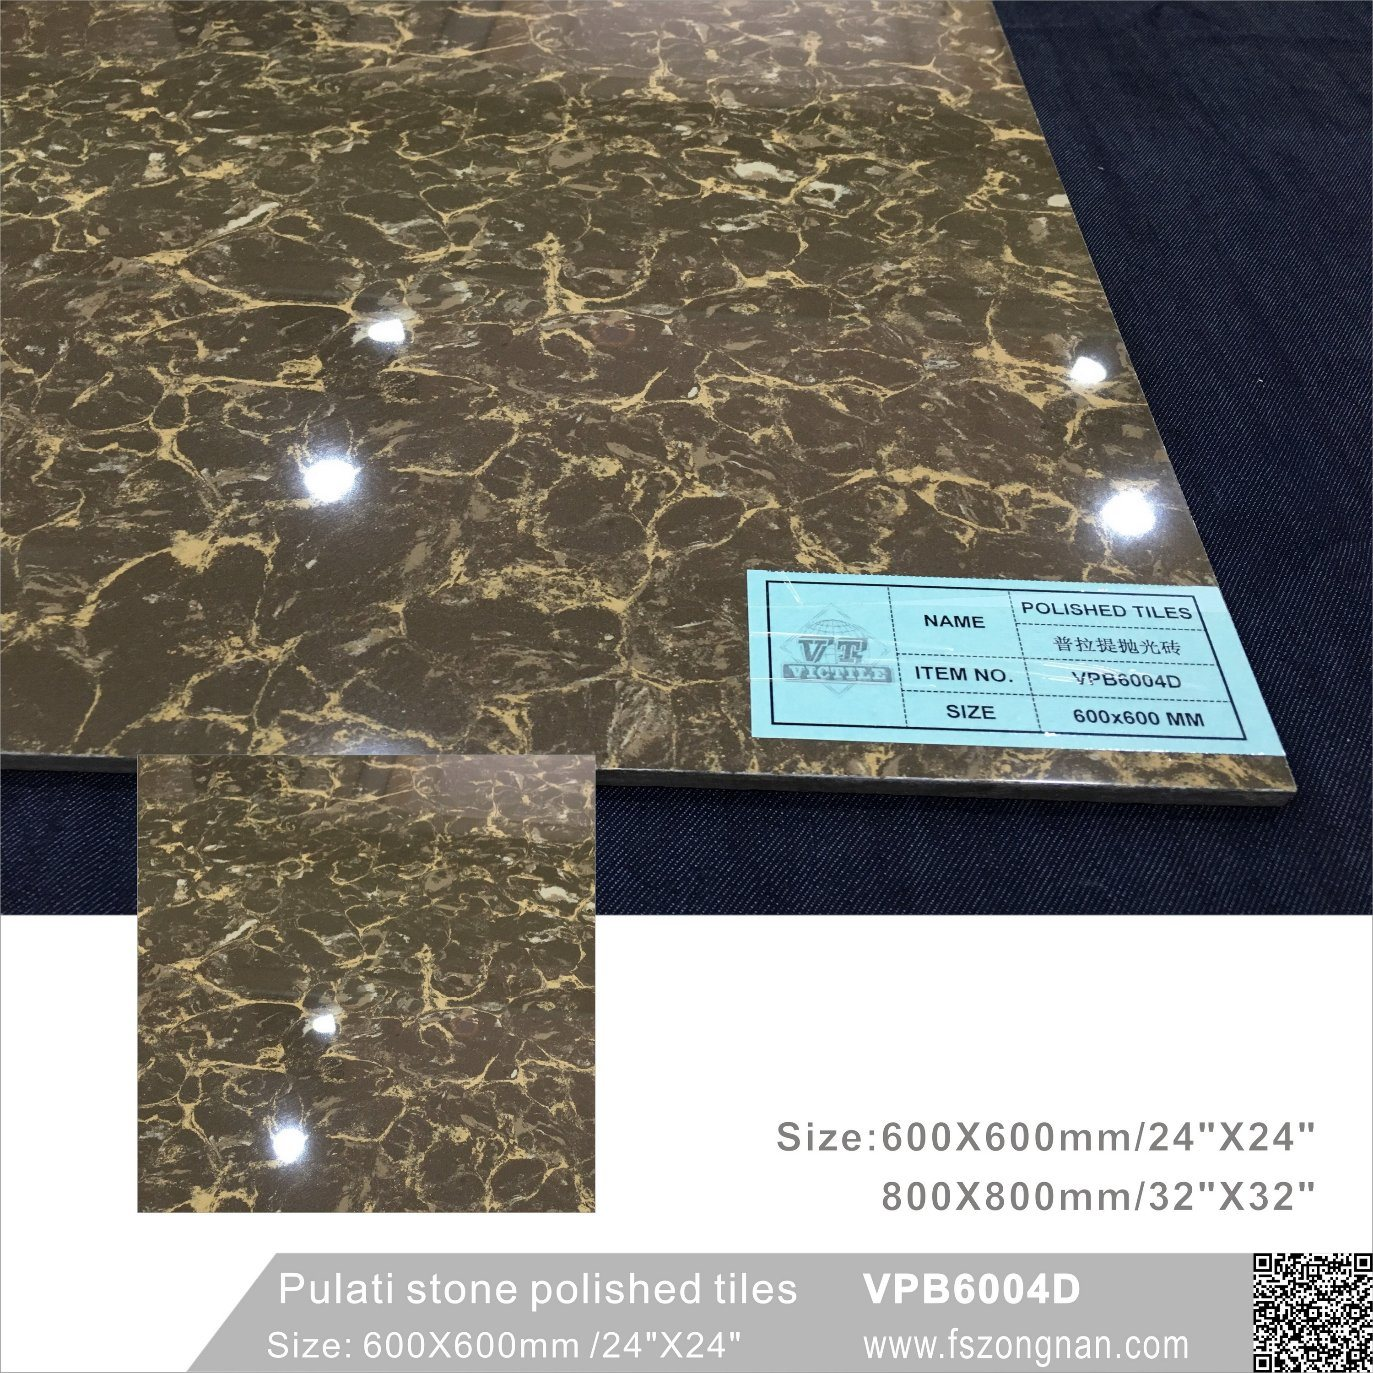 China building material flooring tile high quality pulati stone china building material flooring tile high quality pulati stone polished porcelain floor tile vpb6004d china building material floor tile dailygadgetfo Images